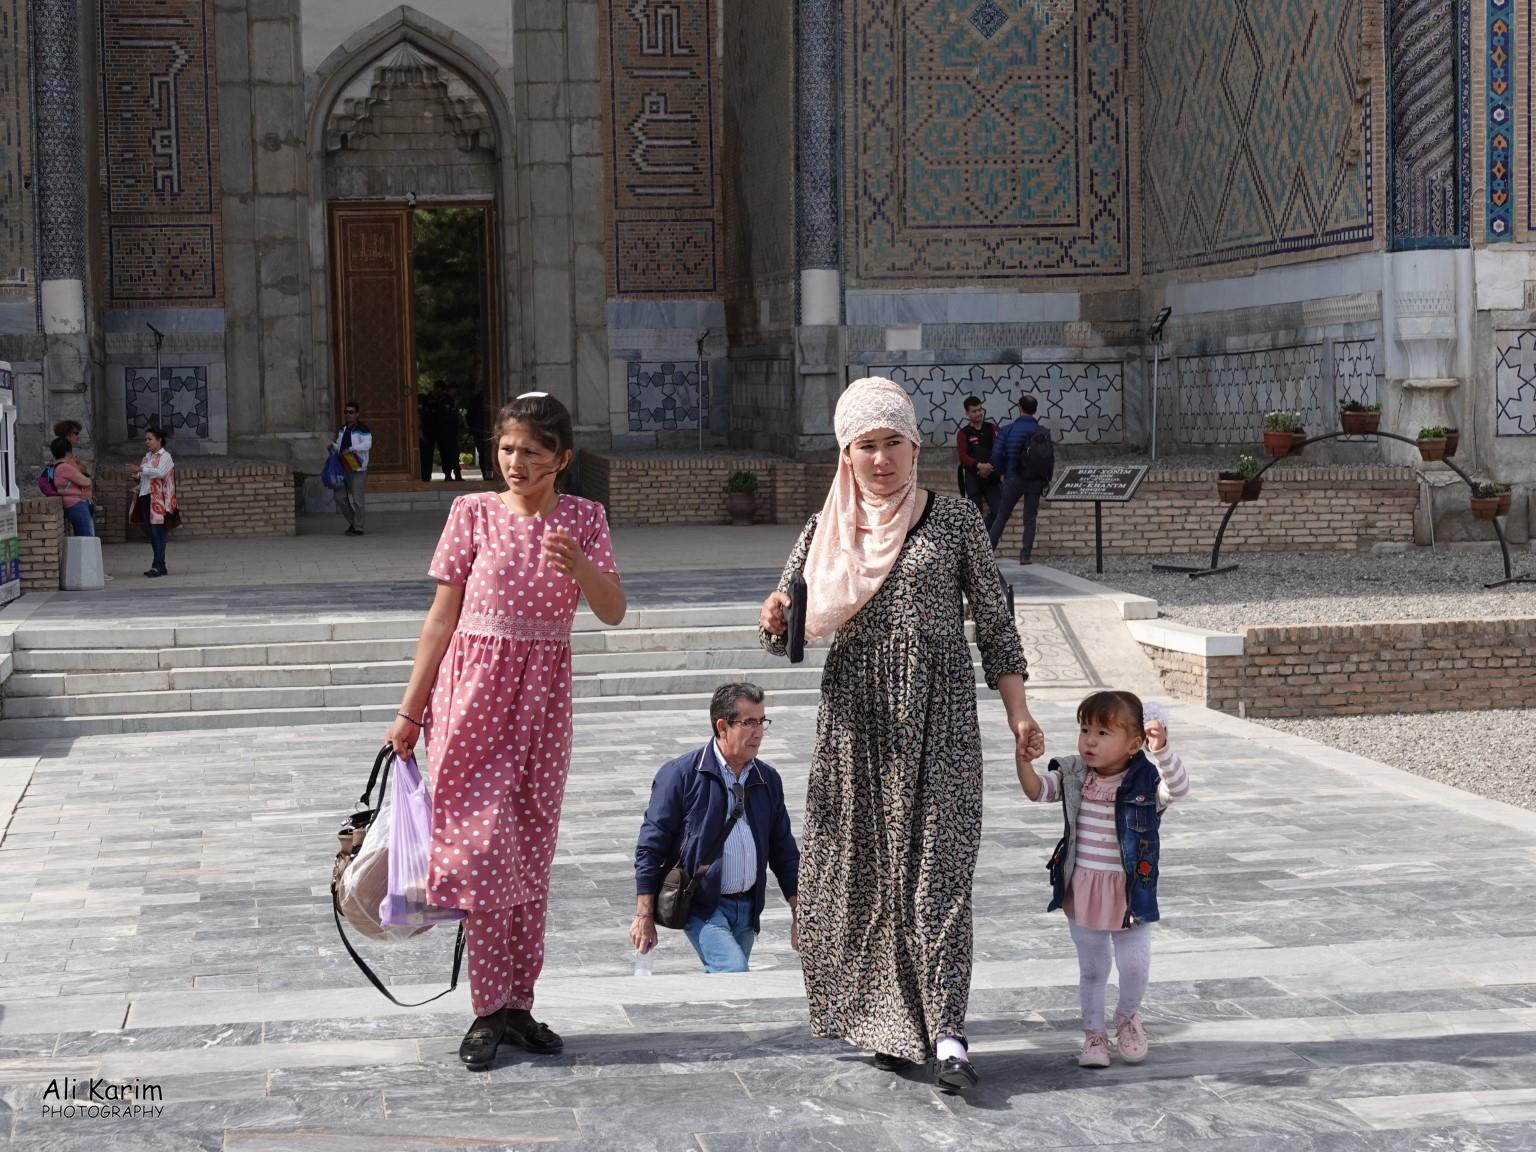 More Samarkand, Families visiting the huge Bibi Khanym mosque complex that was still in the process of restoration